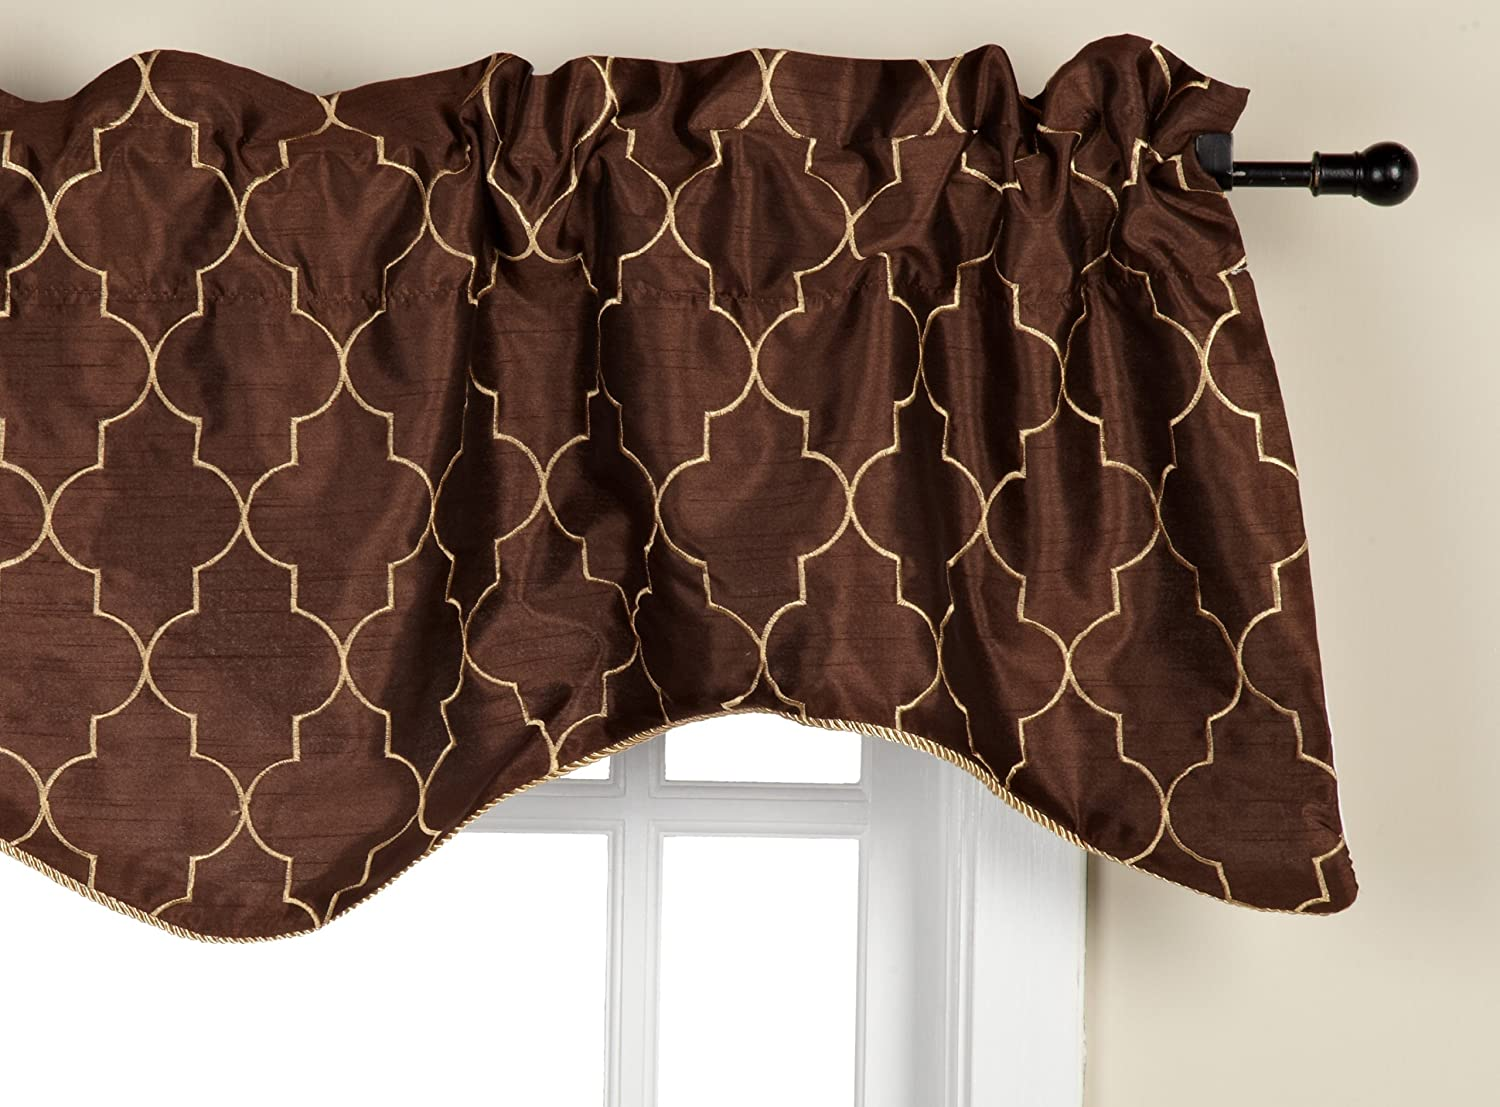 look scalloped stylish client embroidered on valance window leaf face pretty fashions deep this living the for windows her fabric new brown room had pattern wanted olive green a my